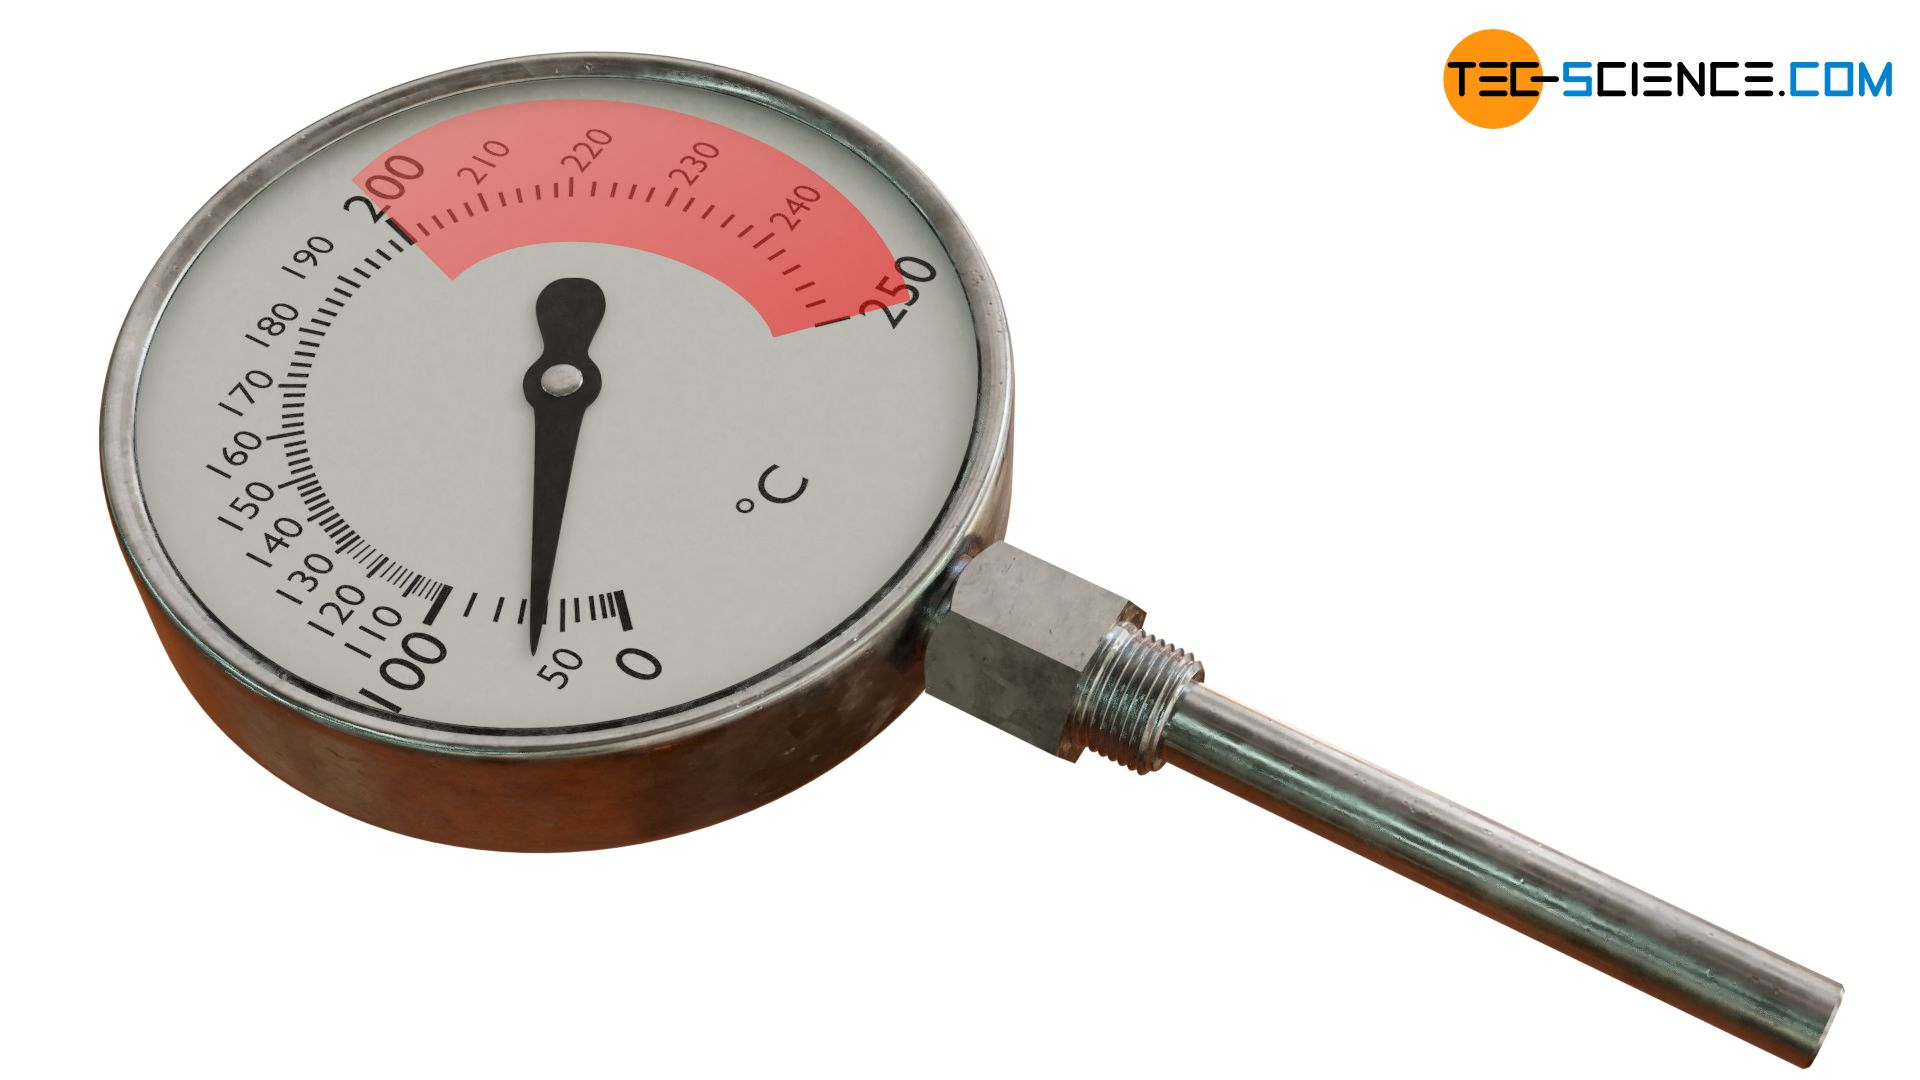 Recommended measuring range of a vapor filled thermometer